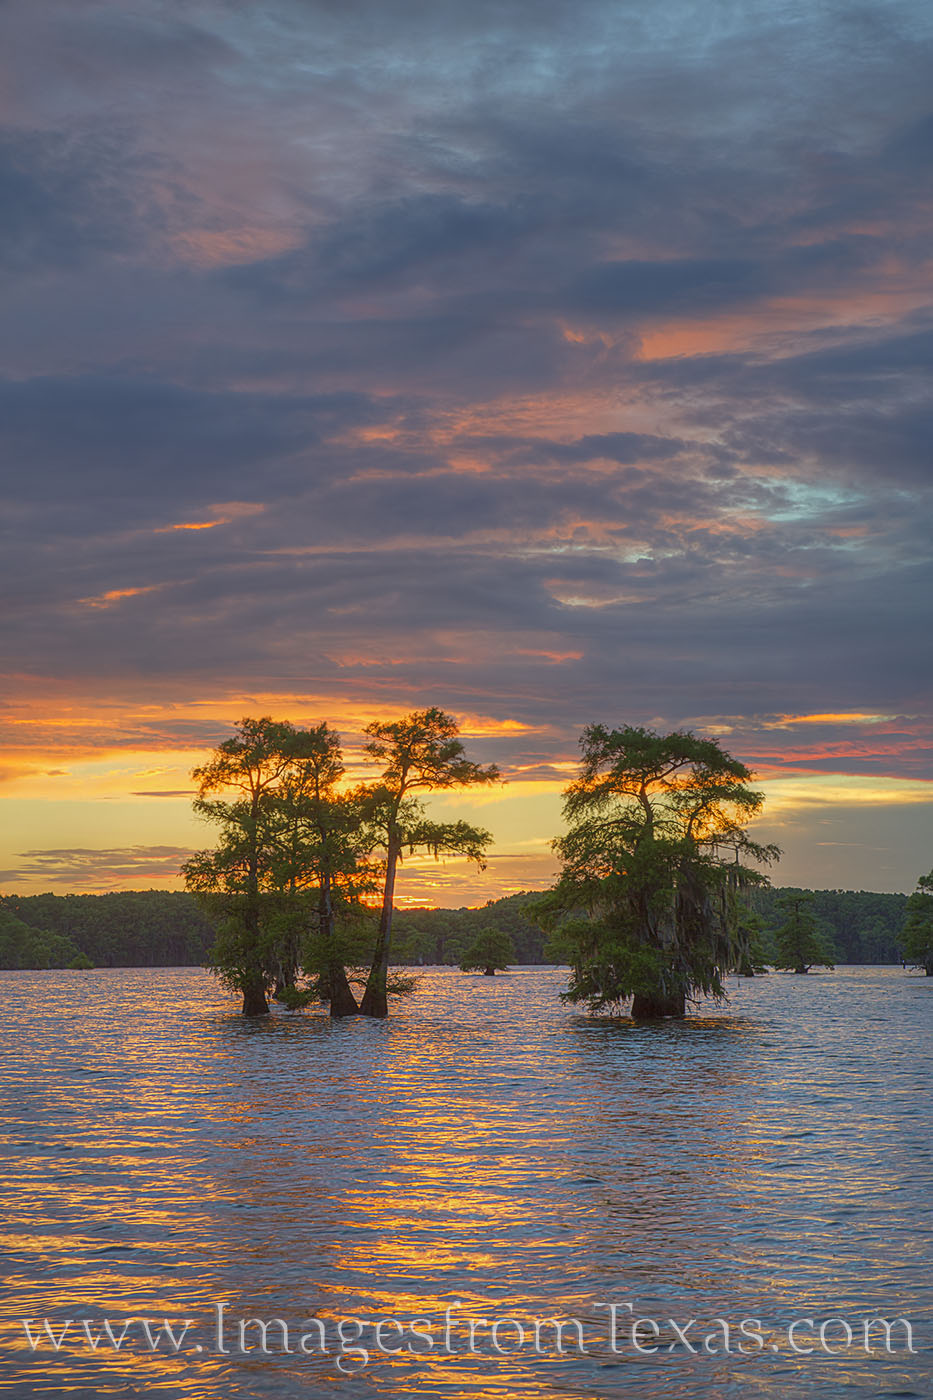 caddo lake, cypress trees, east texas, water, lake, sunset, summer, skies, color, photo